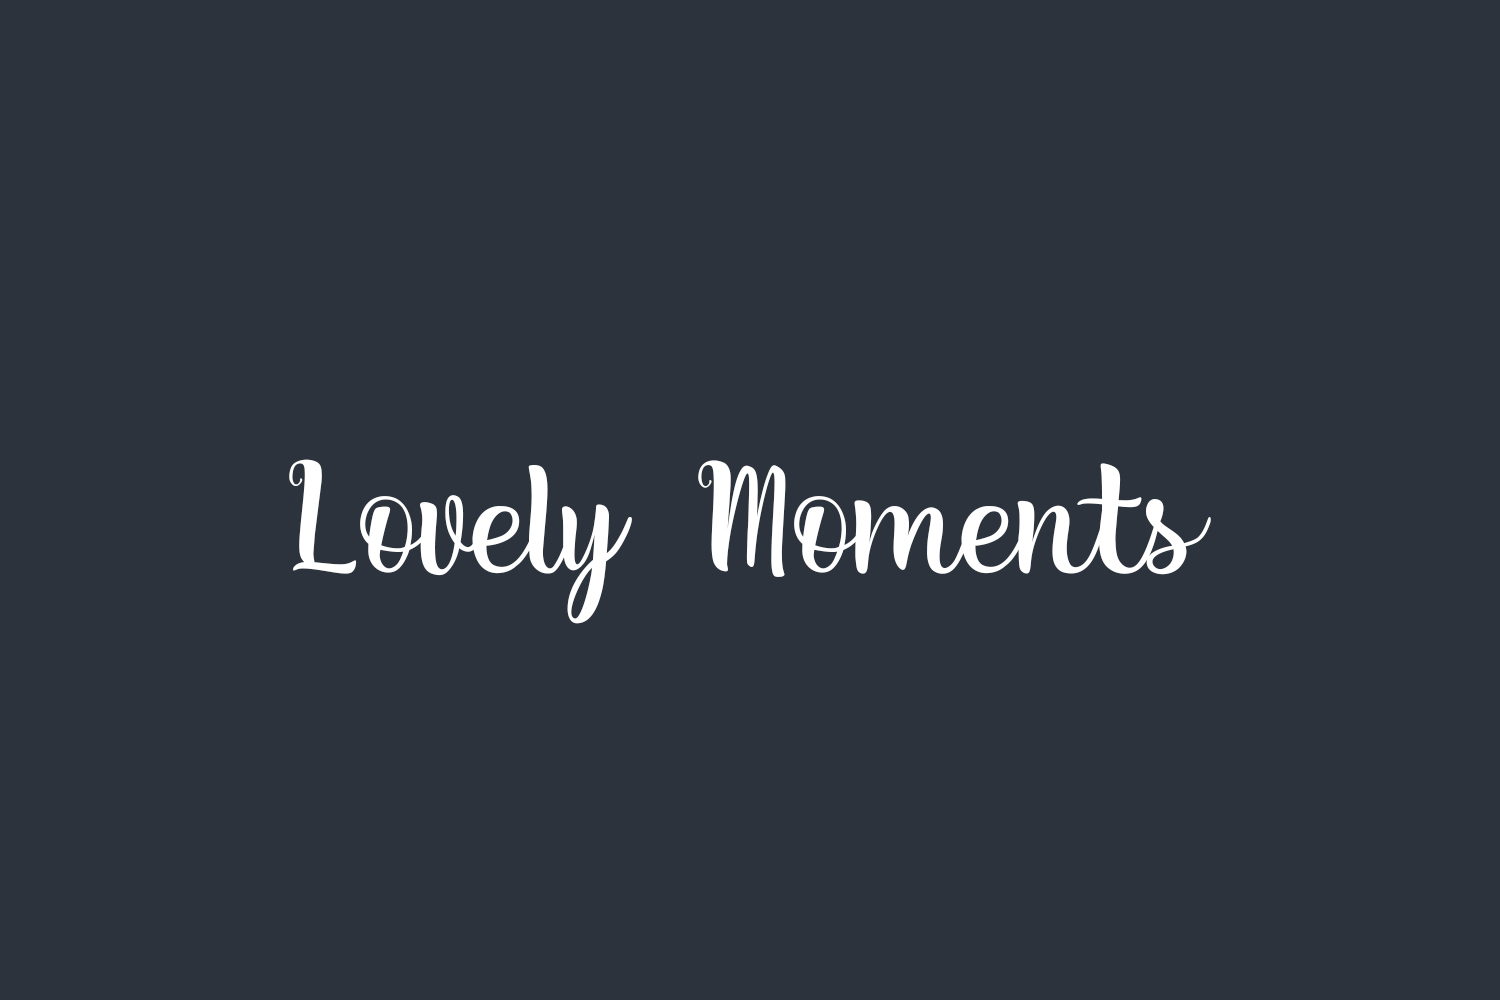 Lovely Moments Free Font